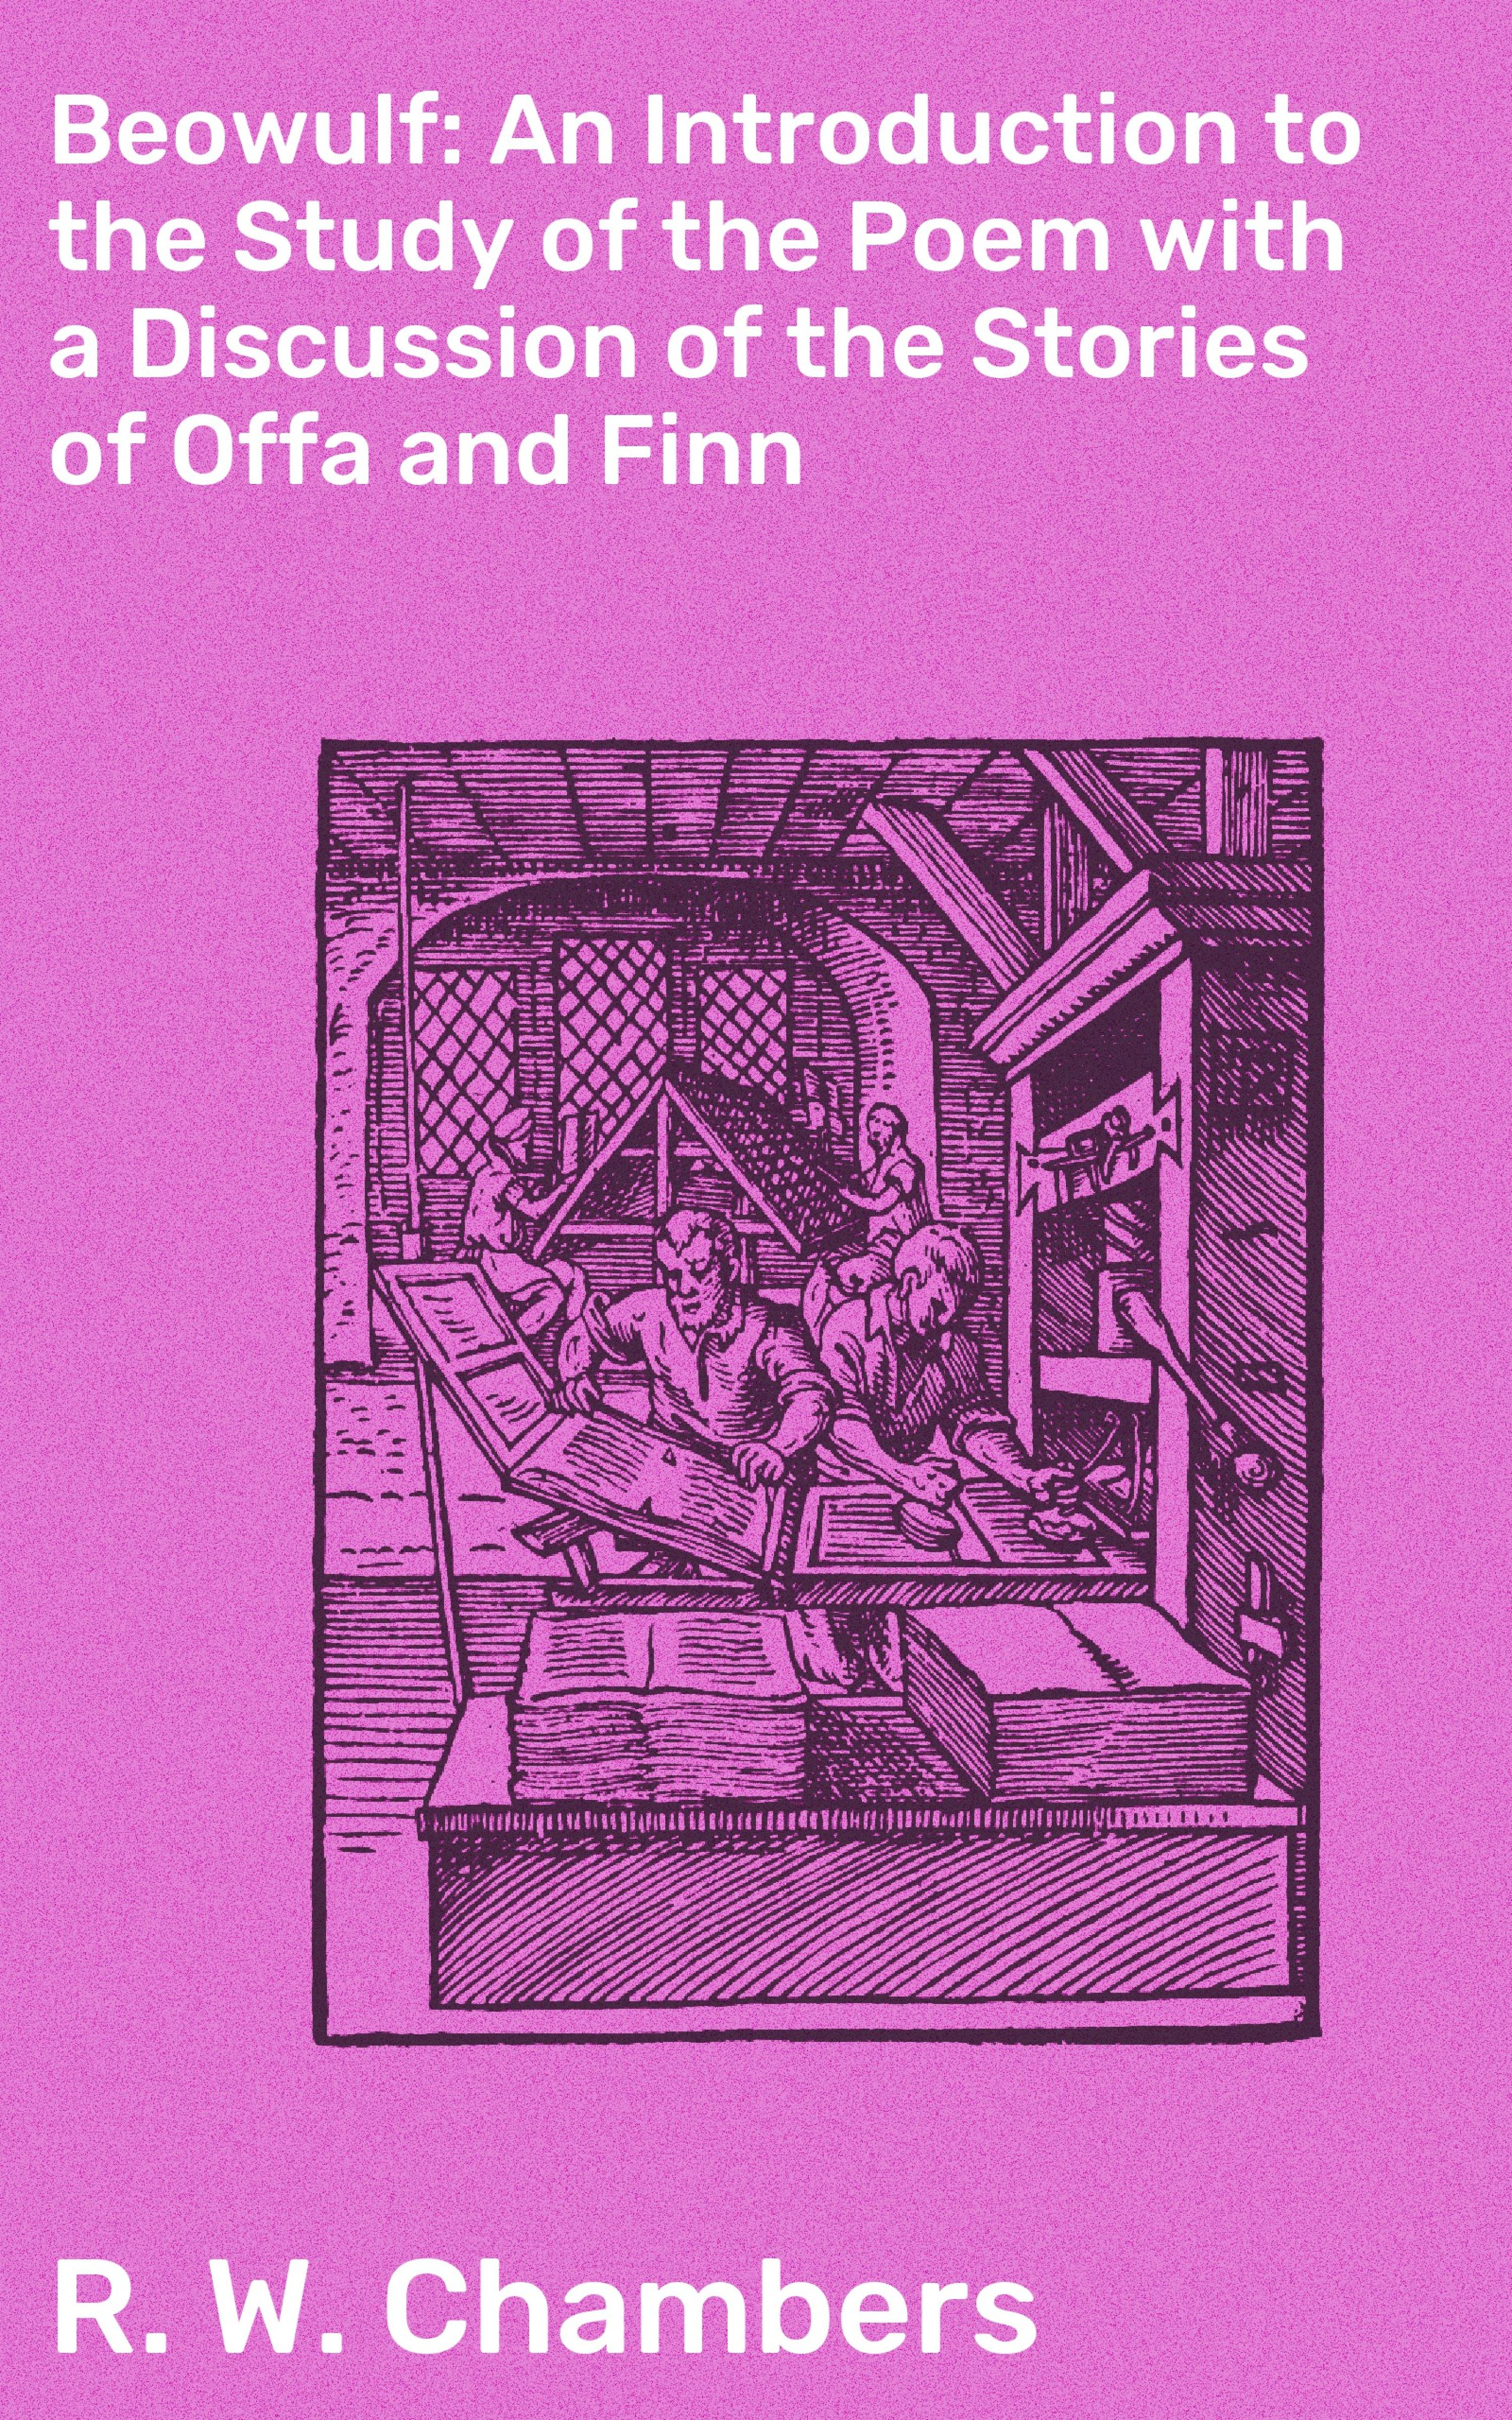 R. W. Chambers Beowulf: An Introduction to the Study of the Poem with a Discussion of the Stories of Offa and Finn lesslie hall beowulf an anglo saxon epic poem